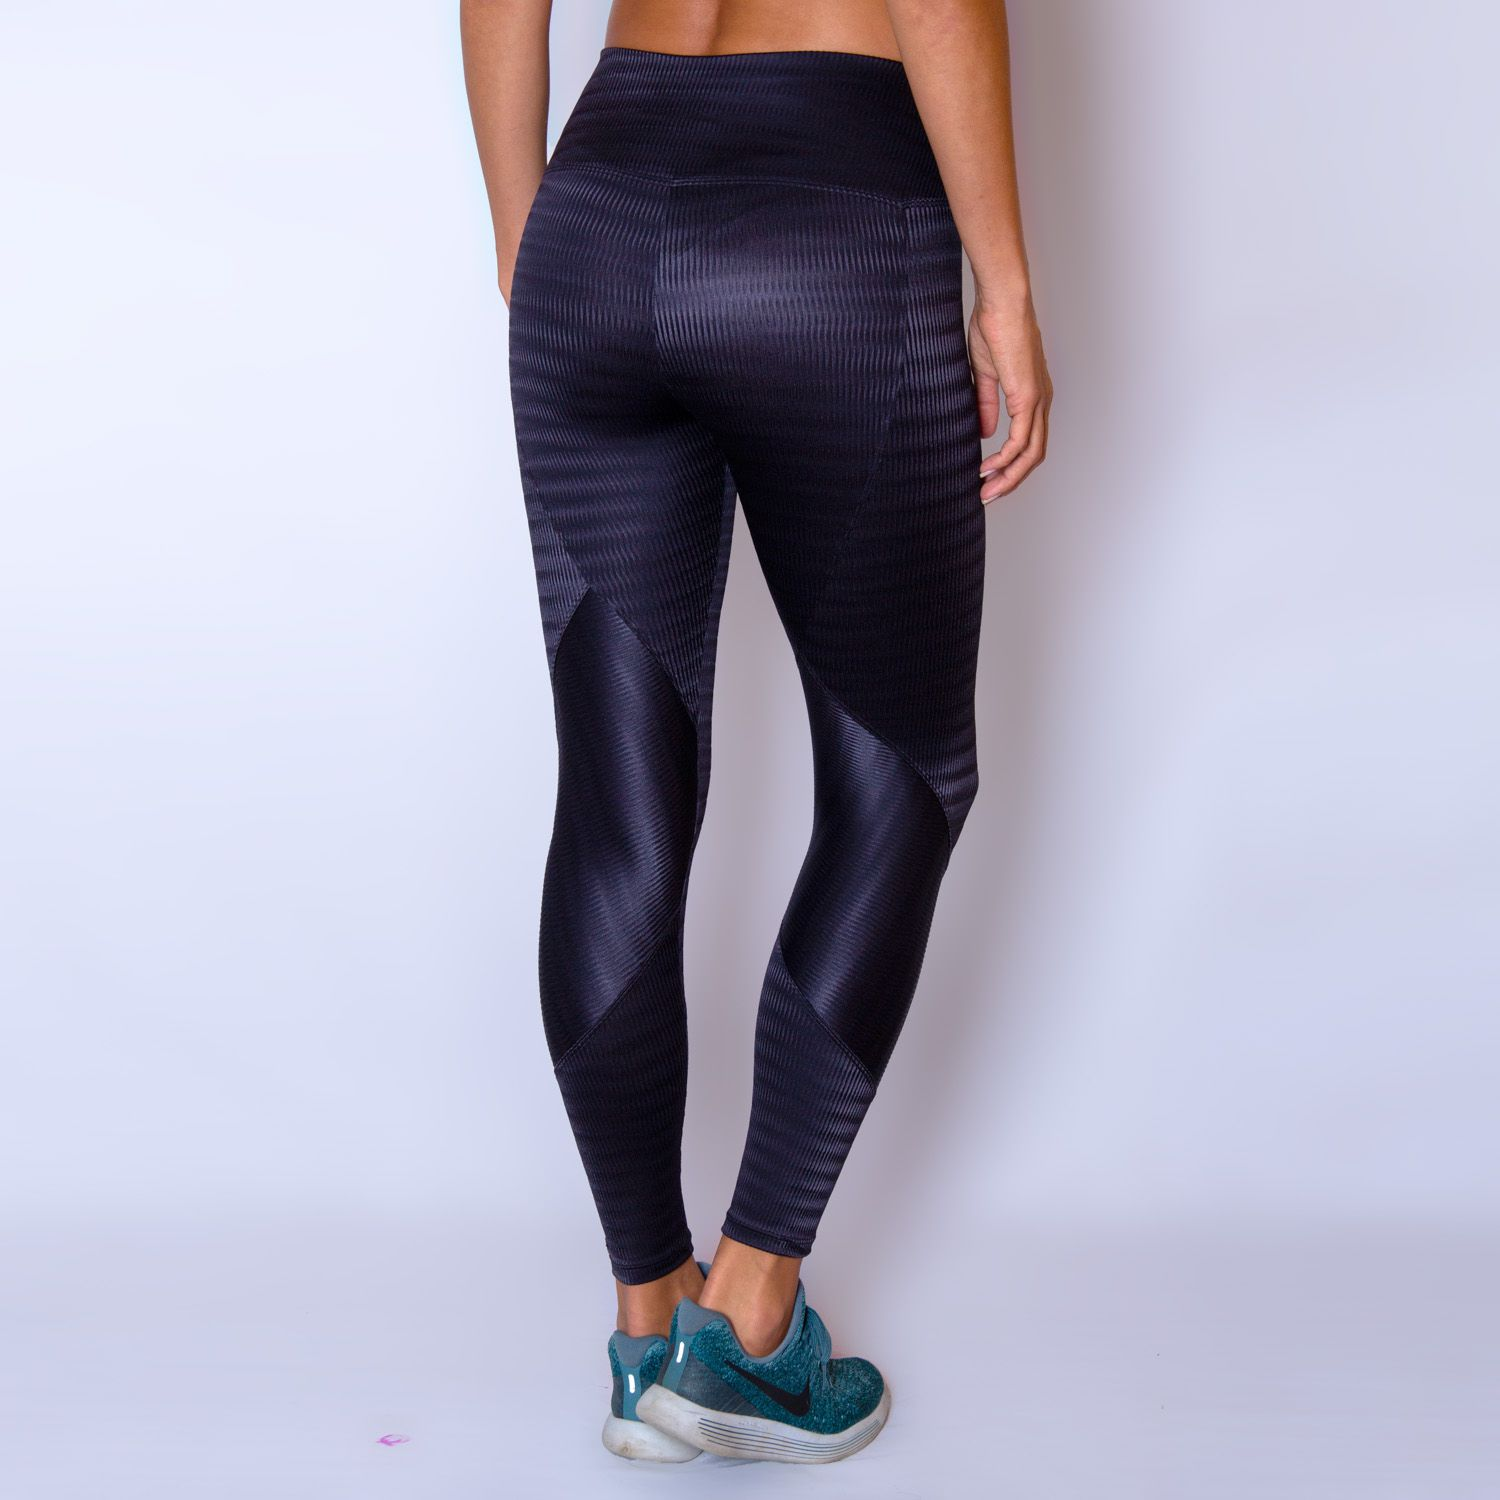 LEGGING FIRENZE 2